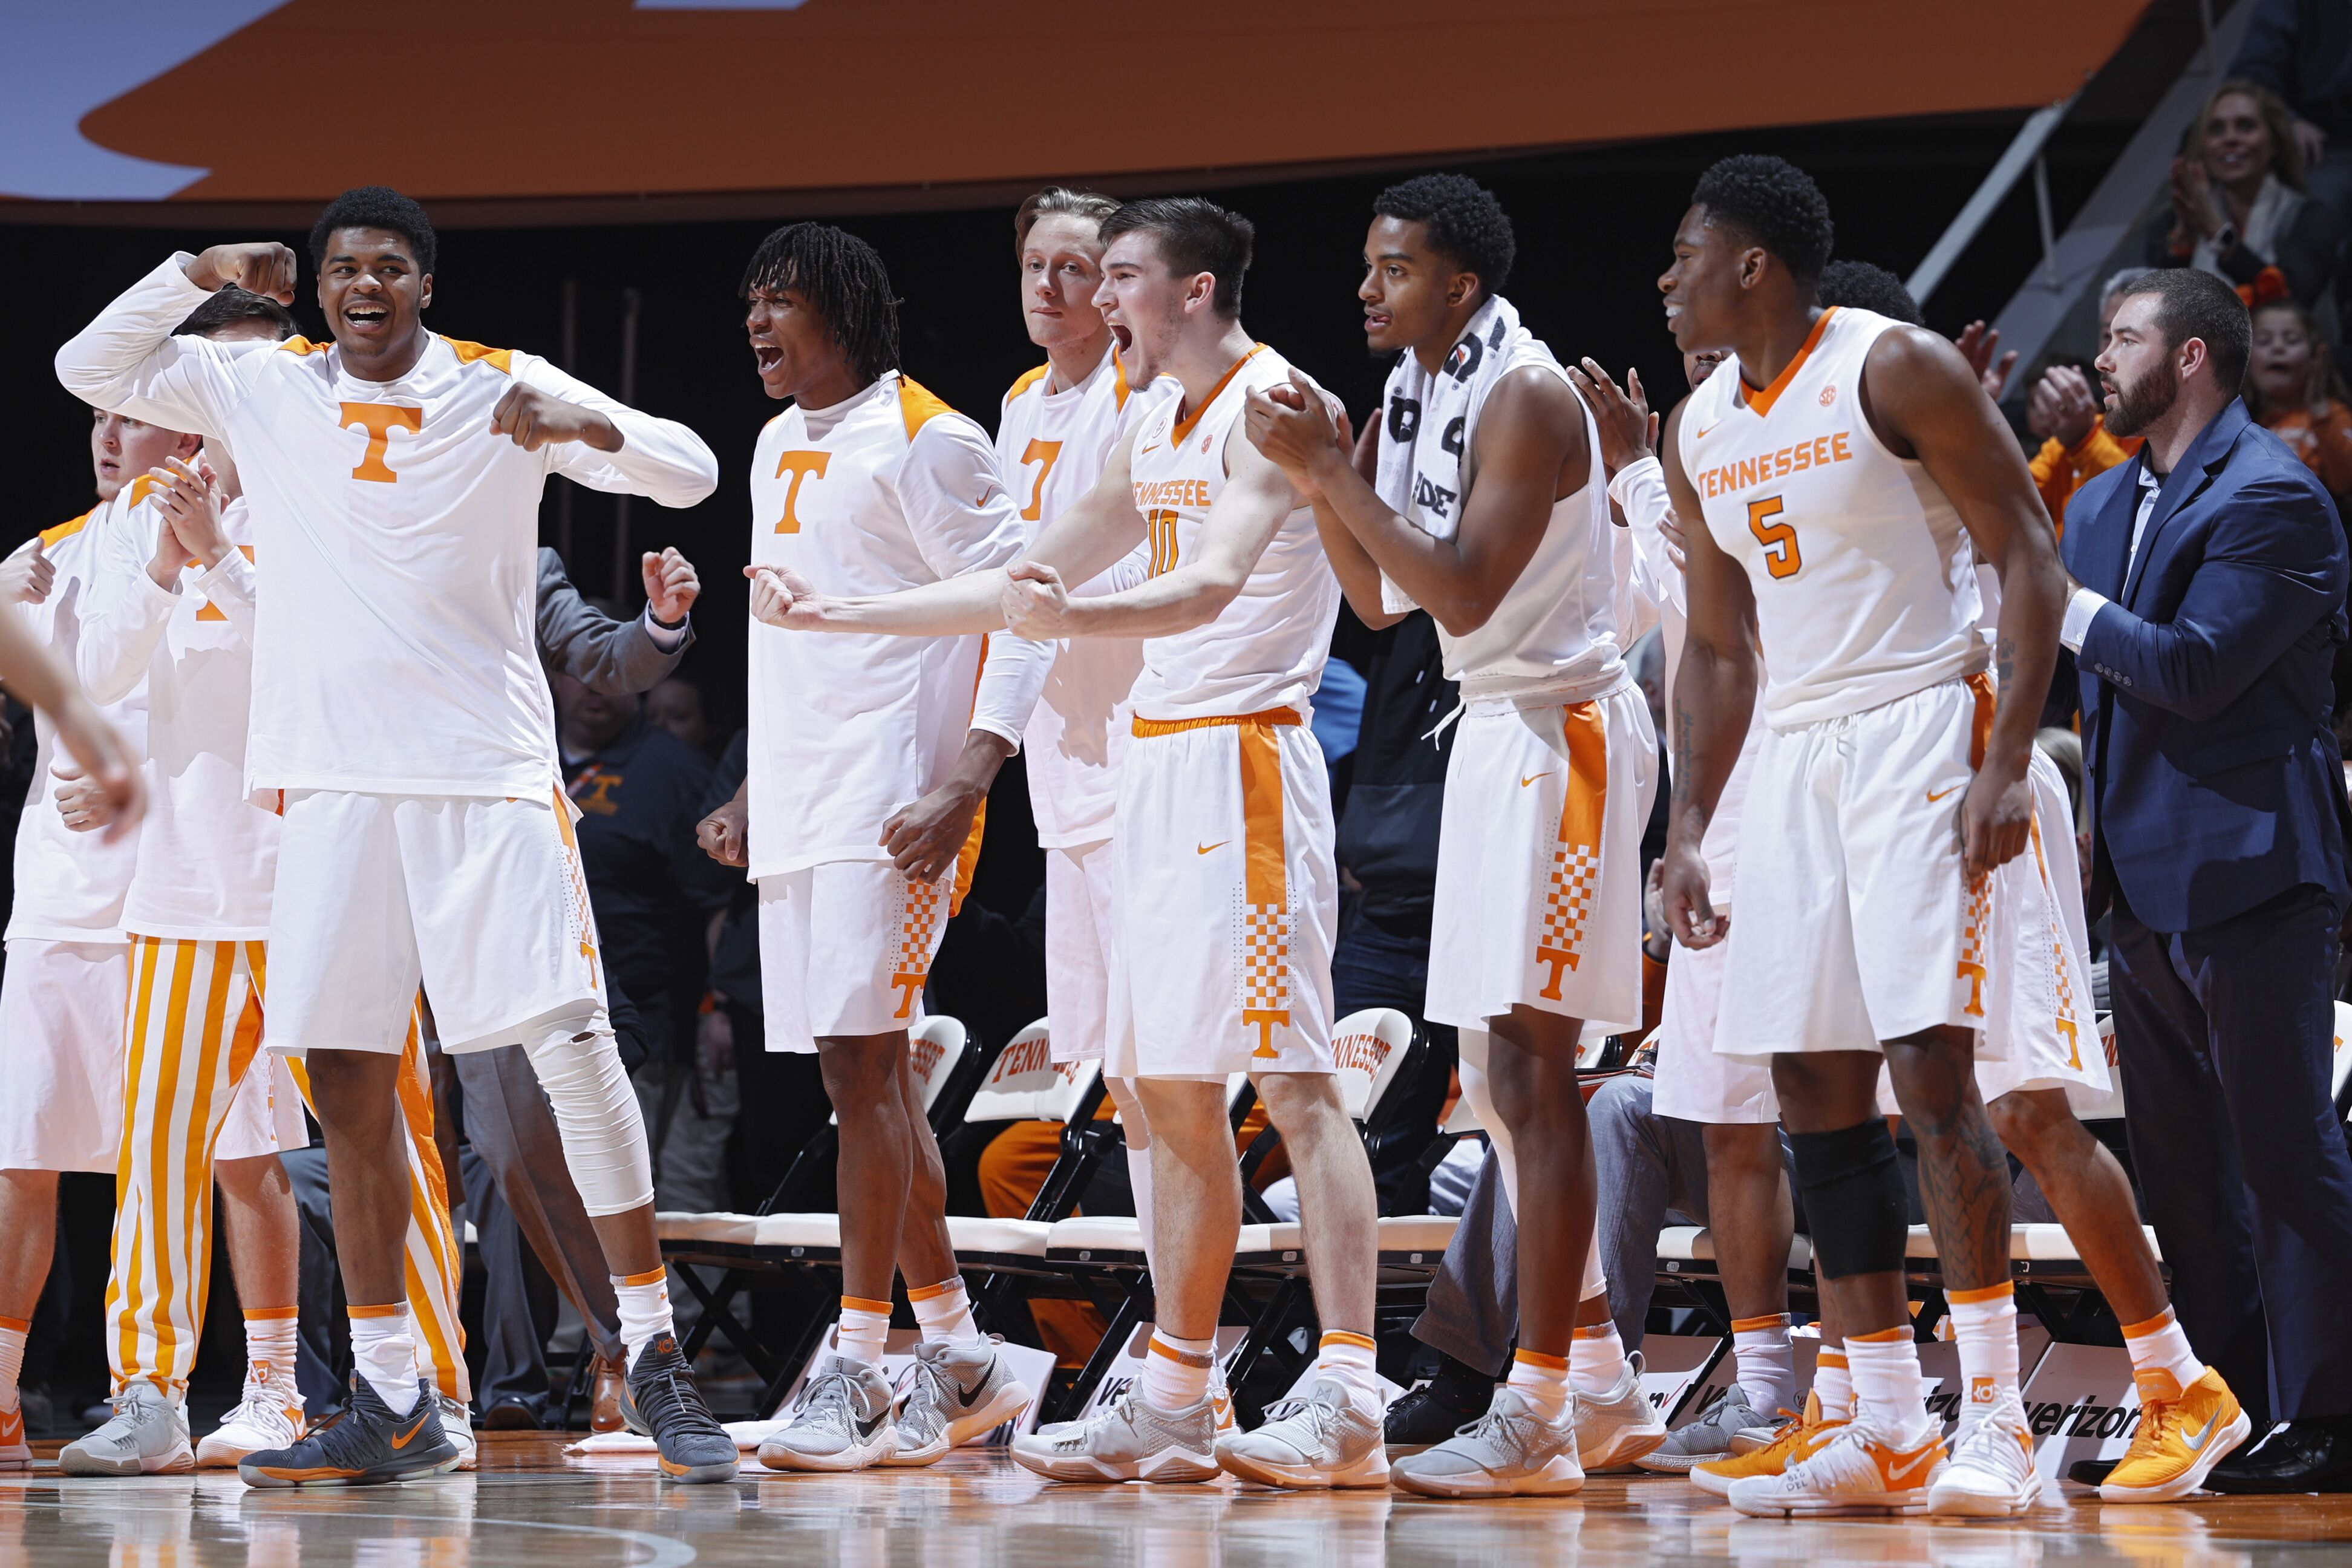 Kentucky Basketball Announces Tv Schedule Game Times And: Kentucky Vs. Tennessee: College Basketball Game Preview